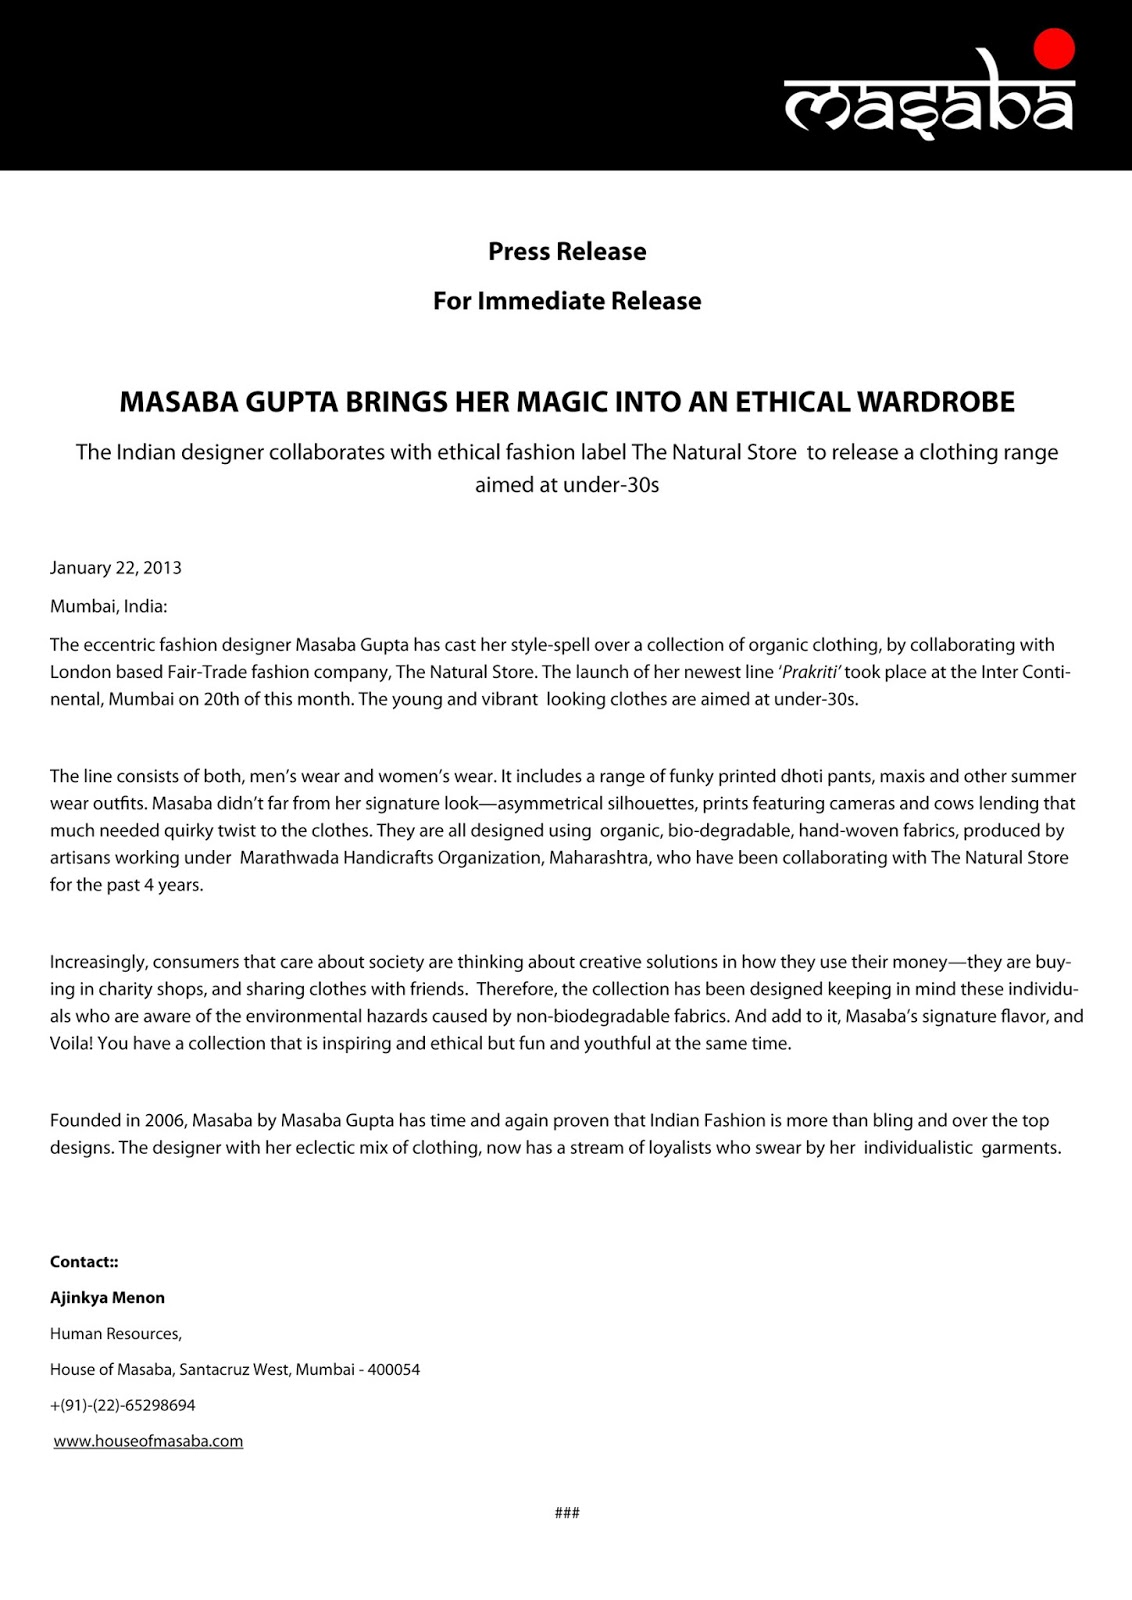 Press release – persuasive writing